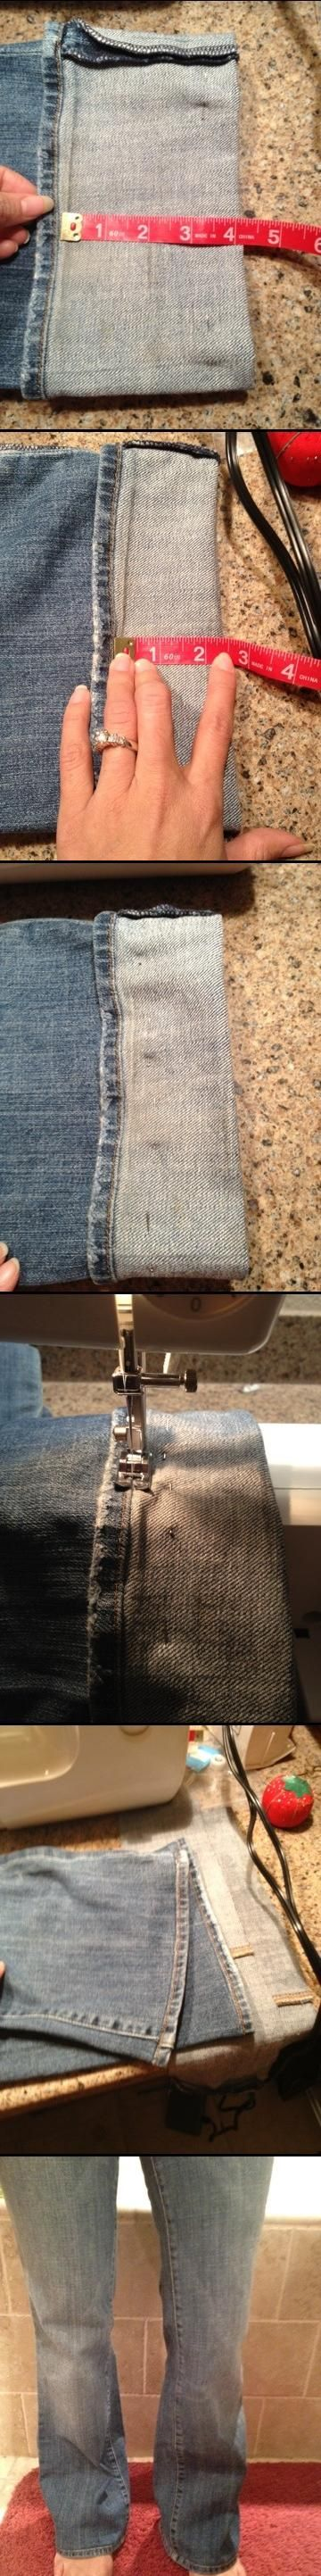 Hem Jeans, Keeping Original Hem, by Refashion Mama.